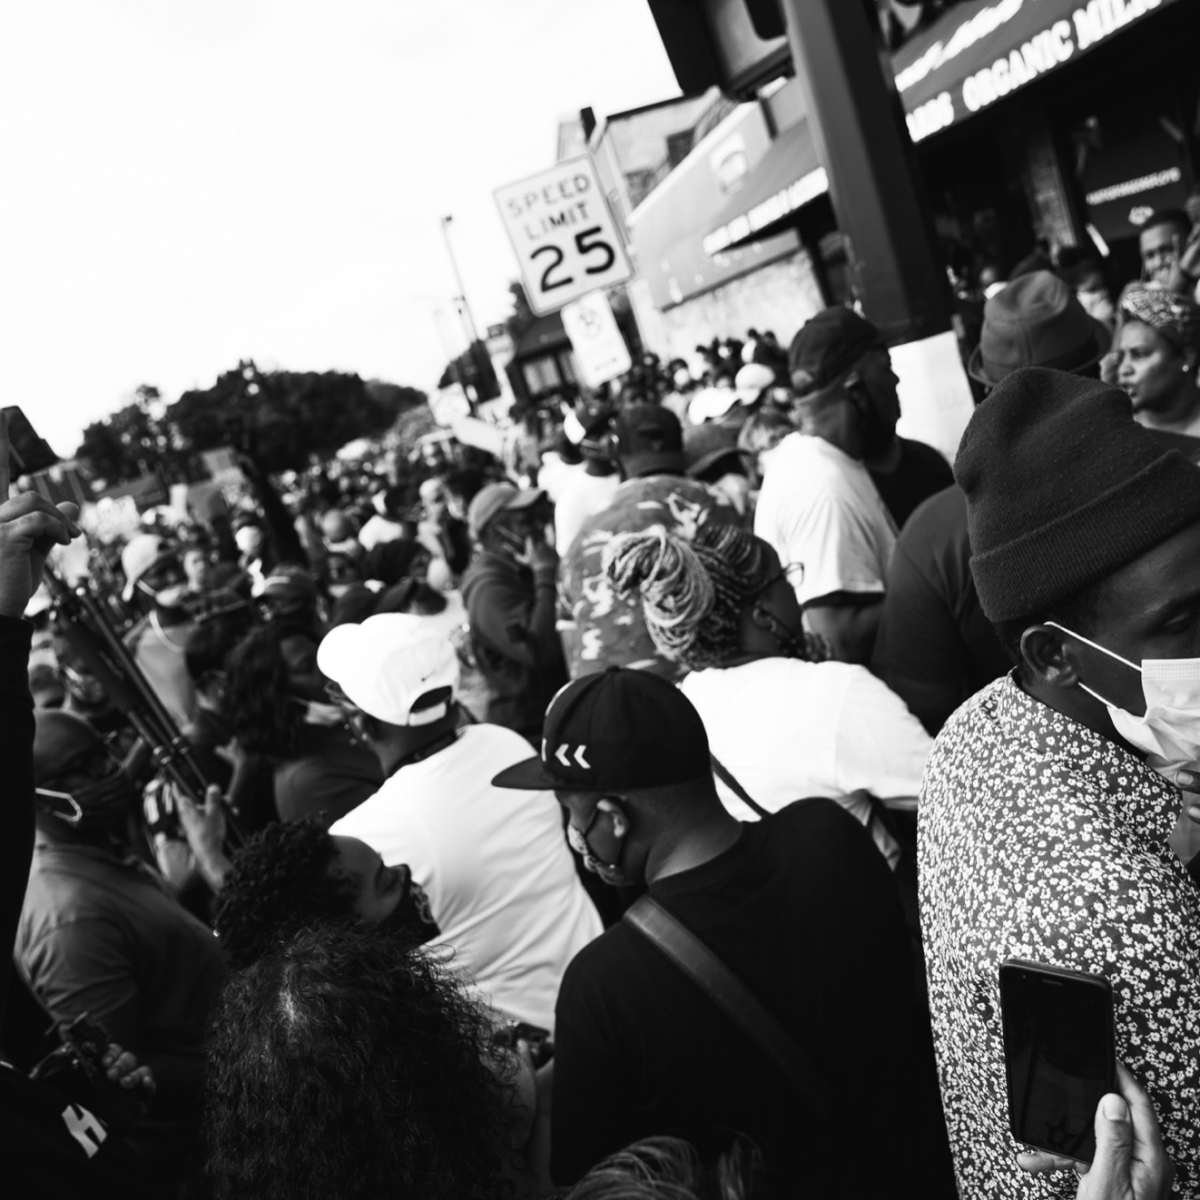 M4BL x ESSENCE Discuss What It Means To Defund Police, Defend Black Lives